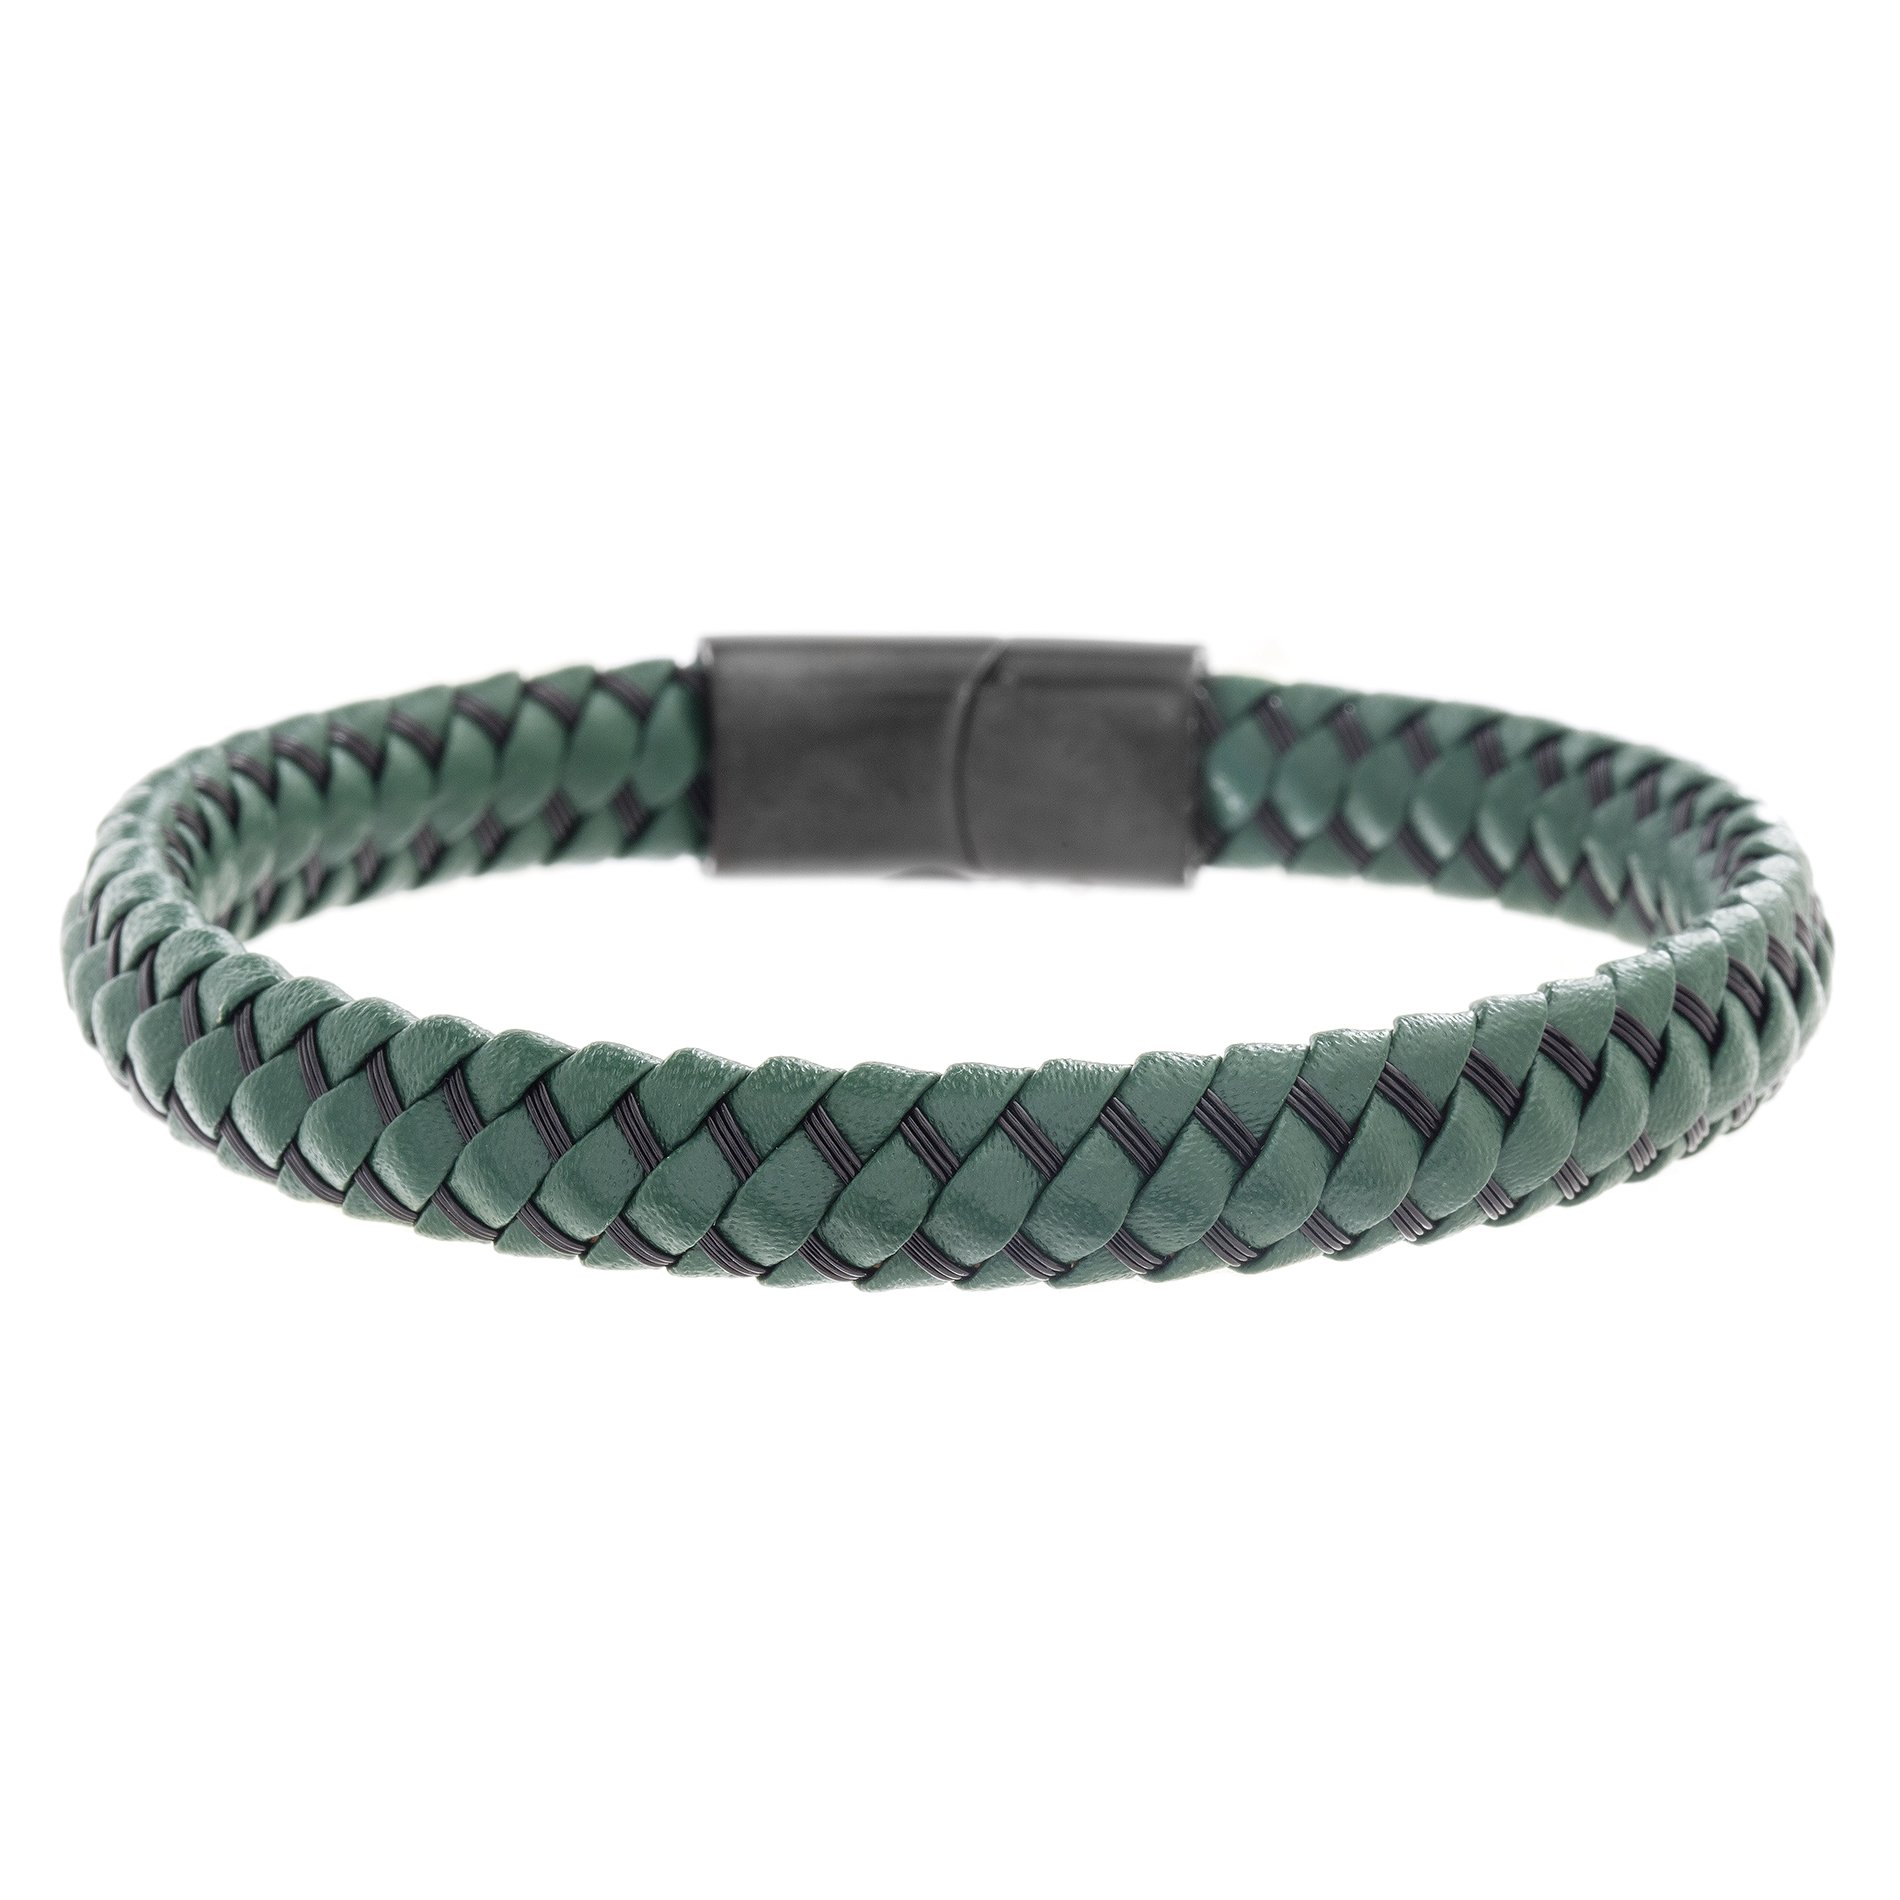 Ben Sherman Men's Black Wired Green Leather Braided Bracelet with Stainless Steel Closure, 7.5